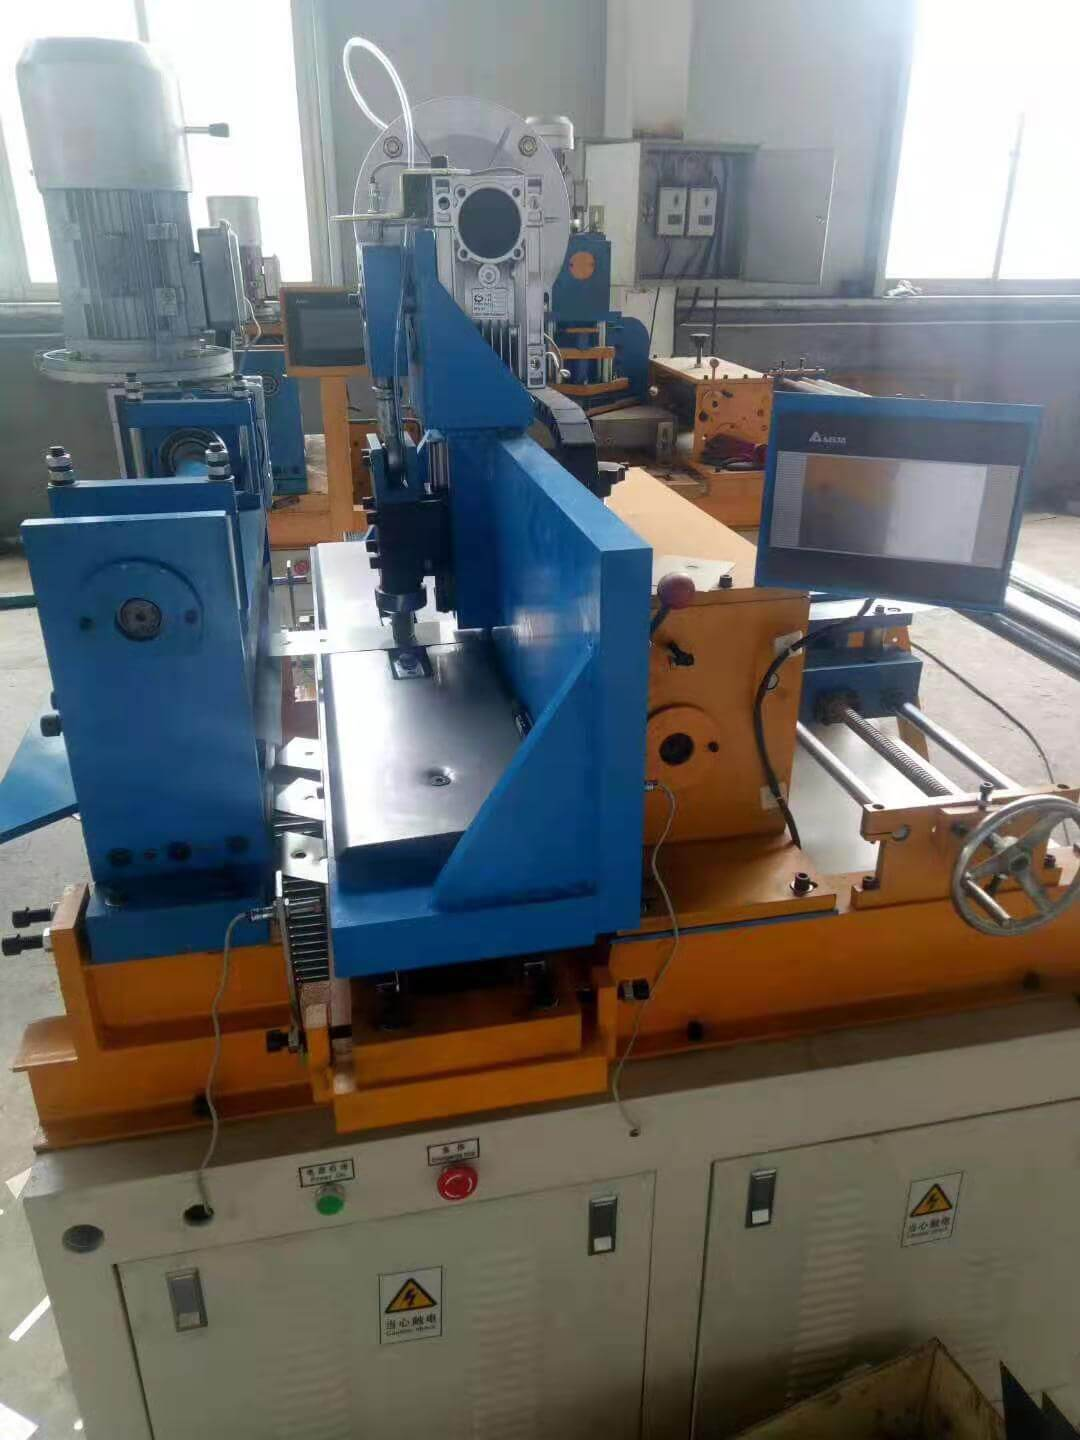 Ausin Pipeline Material&Equipment Co.,Ltd Offers A Wide Variety Of Superior Cutting And Core Forming Machines Available At Affordable Prices And Quick Delivery